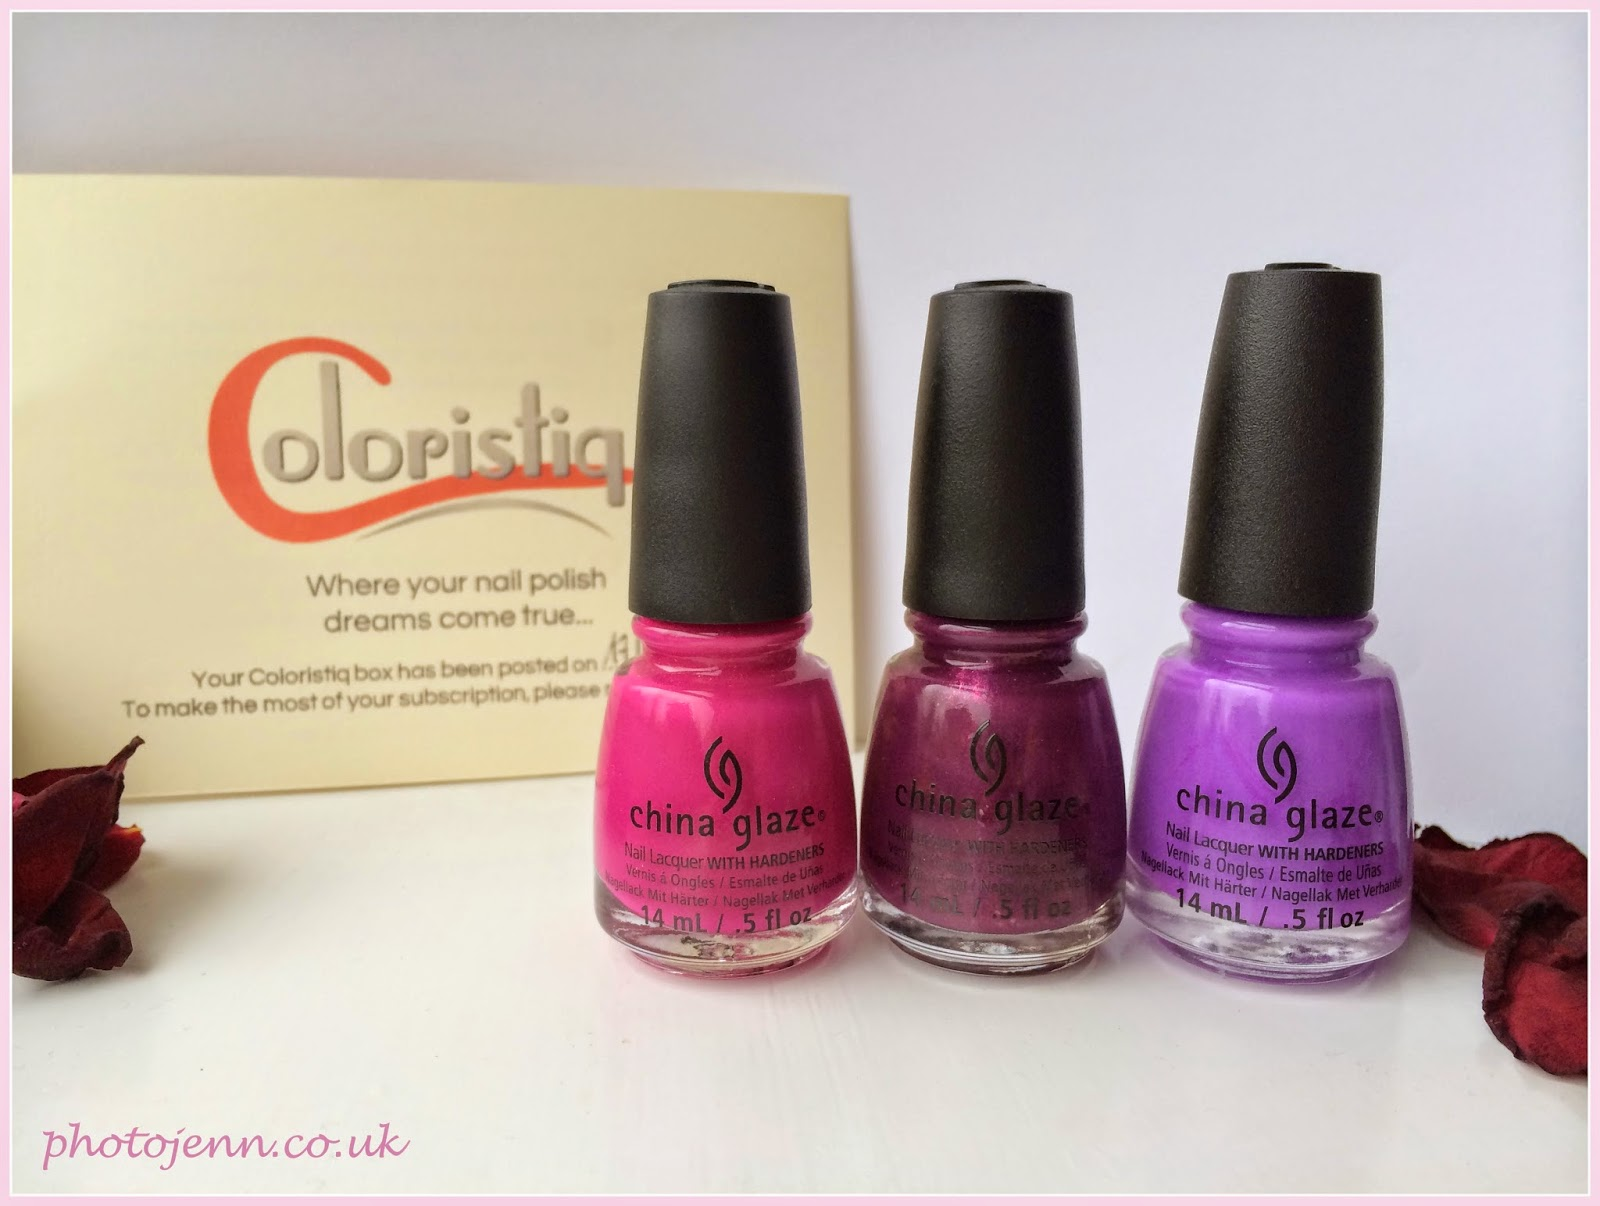 coloristiq-monthly-nail-polish-rental-box